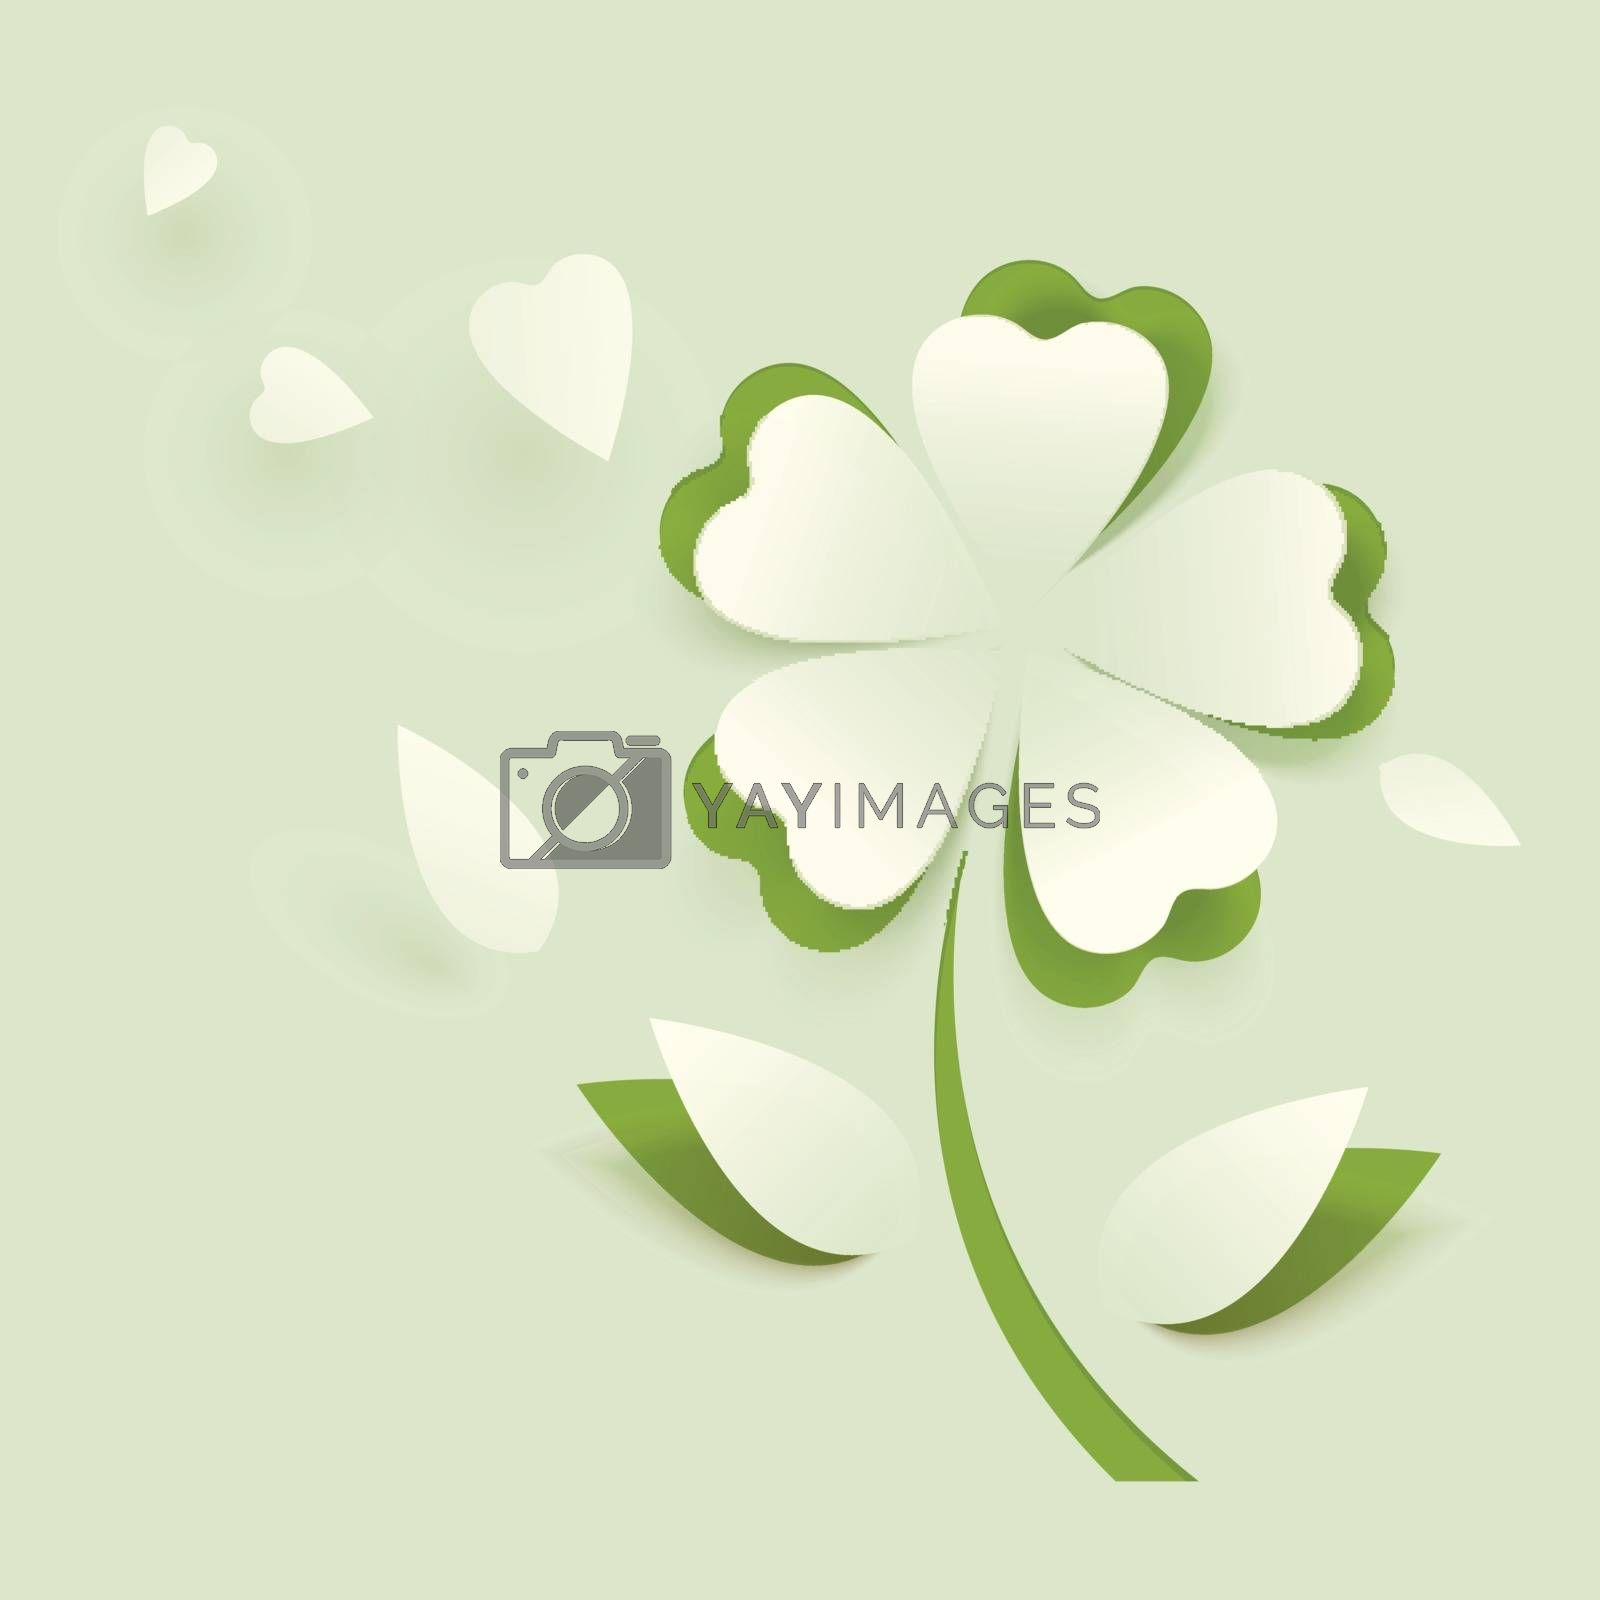 Royalty free image of Paper cut out clover leaf illustration on green background. by aispl